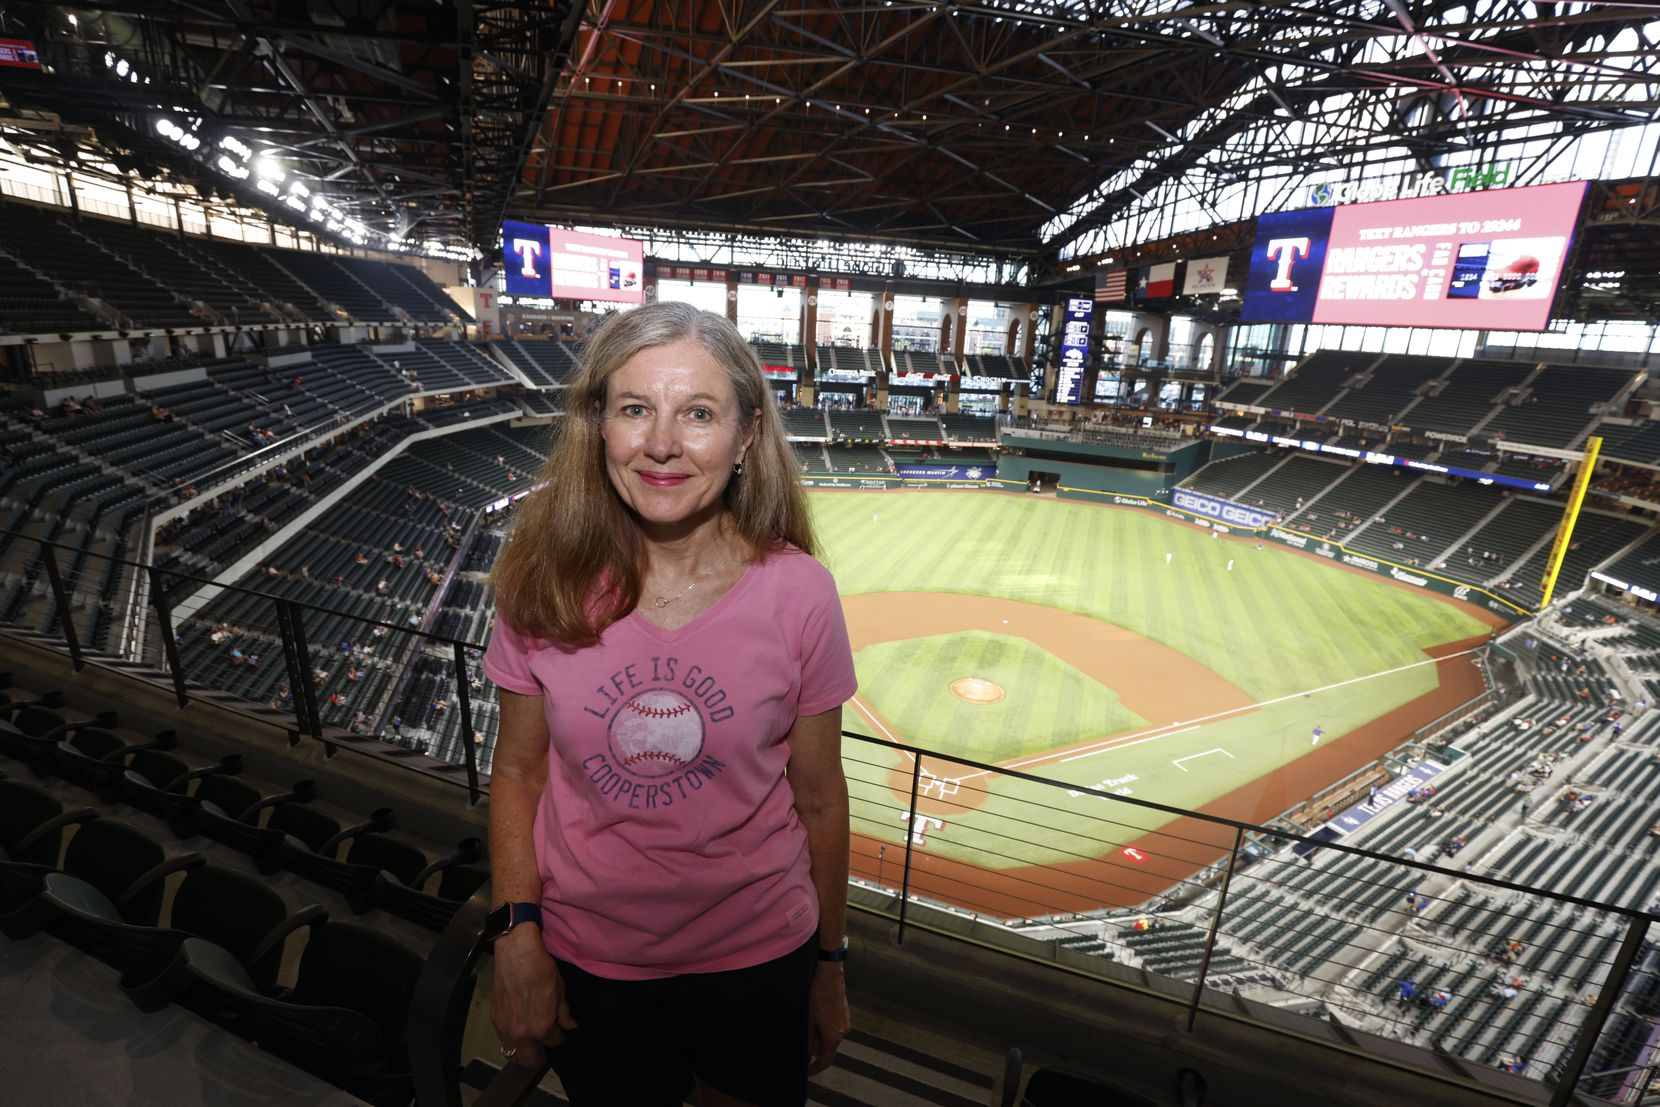 Season ticket holder Pam Lunk of Arlington, watches the Texas Rangers play during an MLB baseball game between the Texas Rangers and the Houston Astros in Arlington, Texas on Thursday, Sept. 16, 2021. (Michael Ainsworth/Special Contributor)